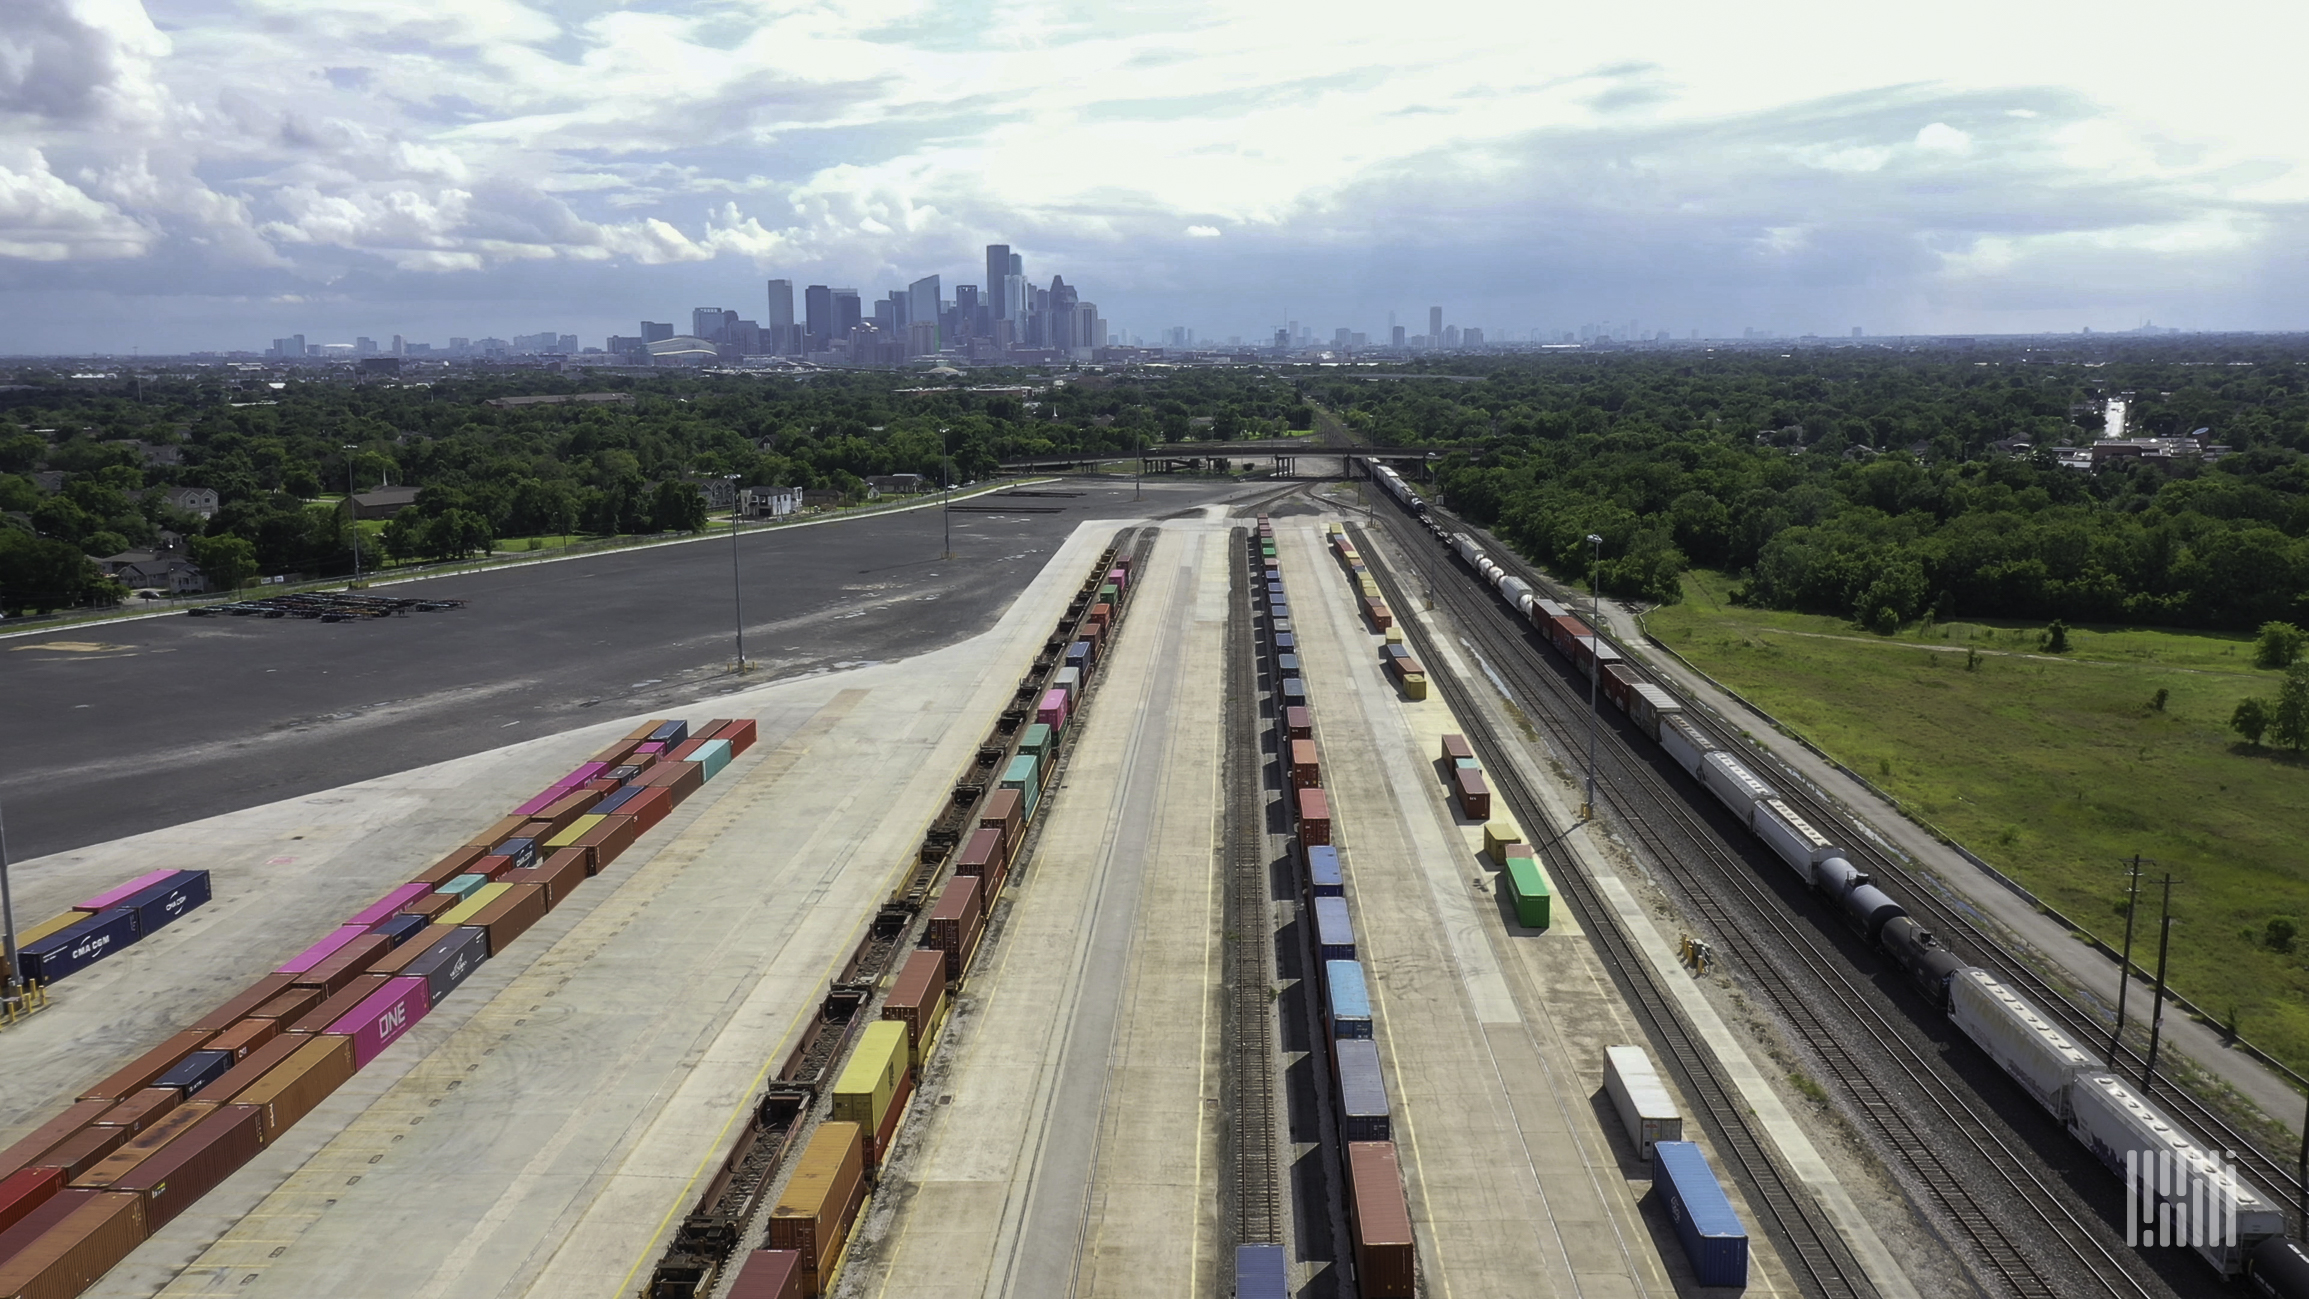 An aerial photograph of a rail yard with parked intermodal containers lined up in rows.